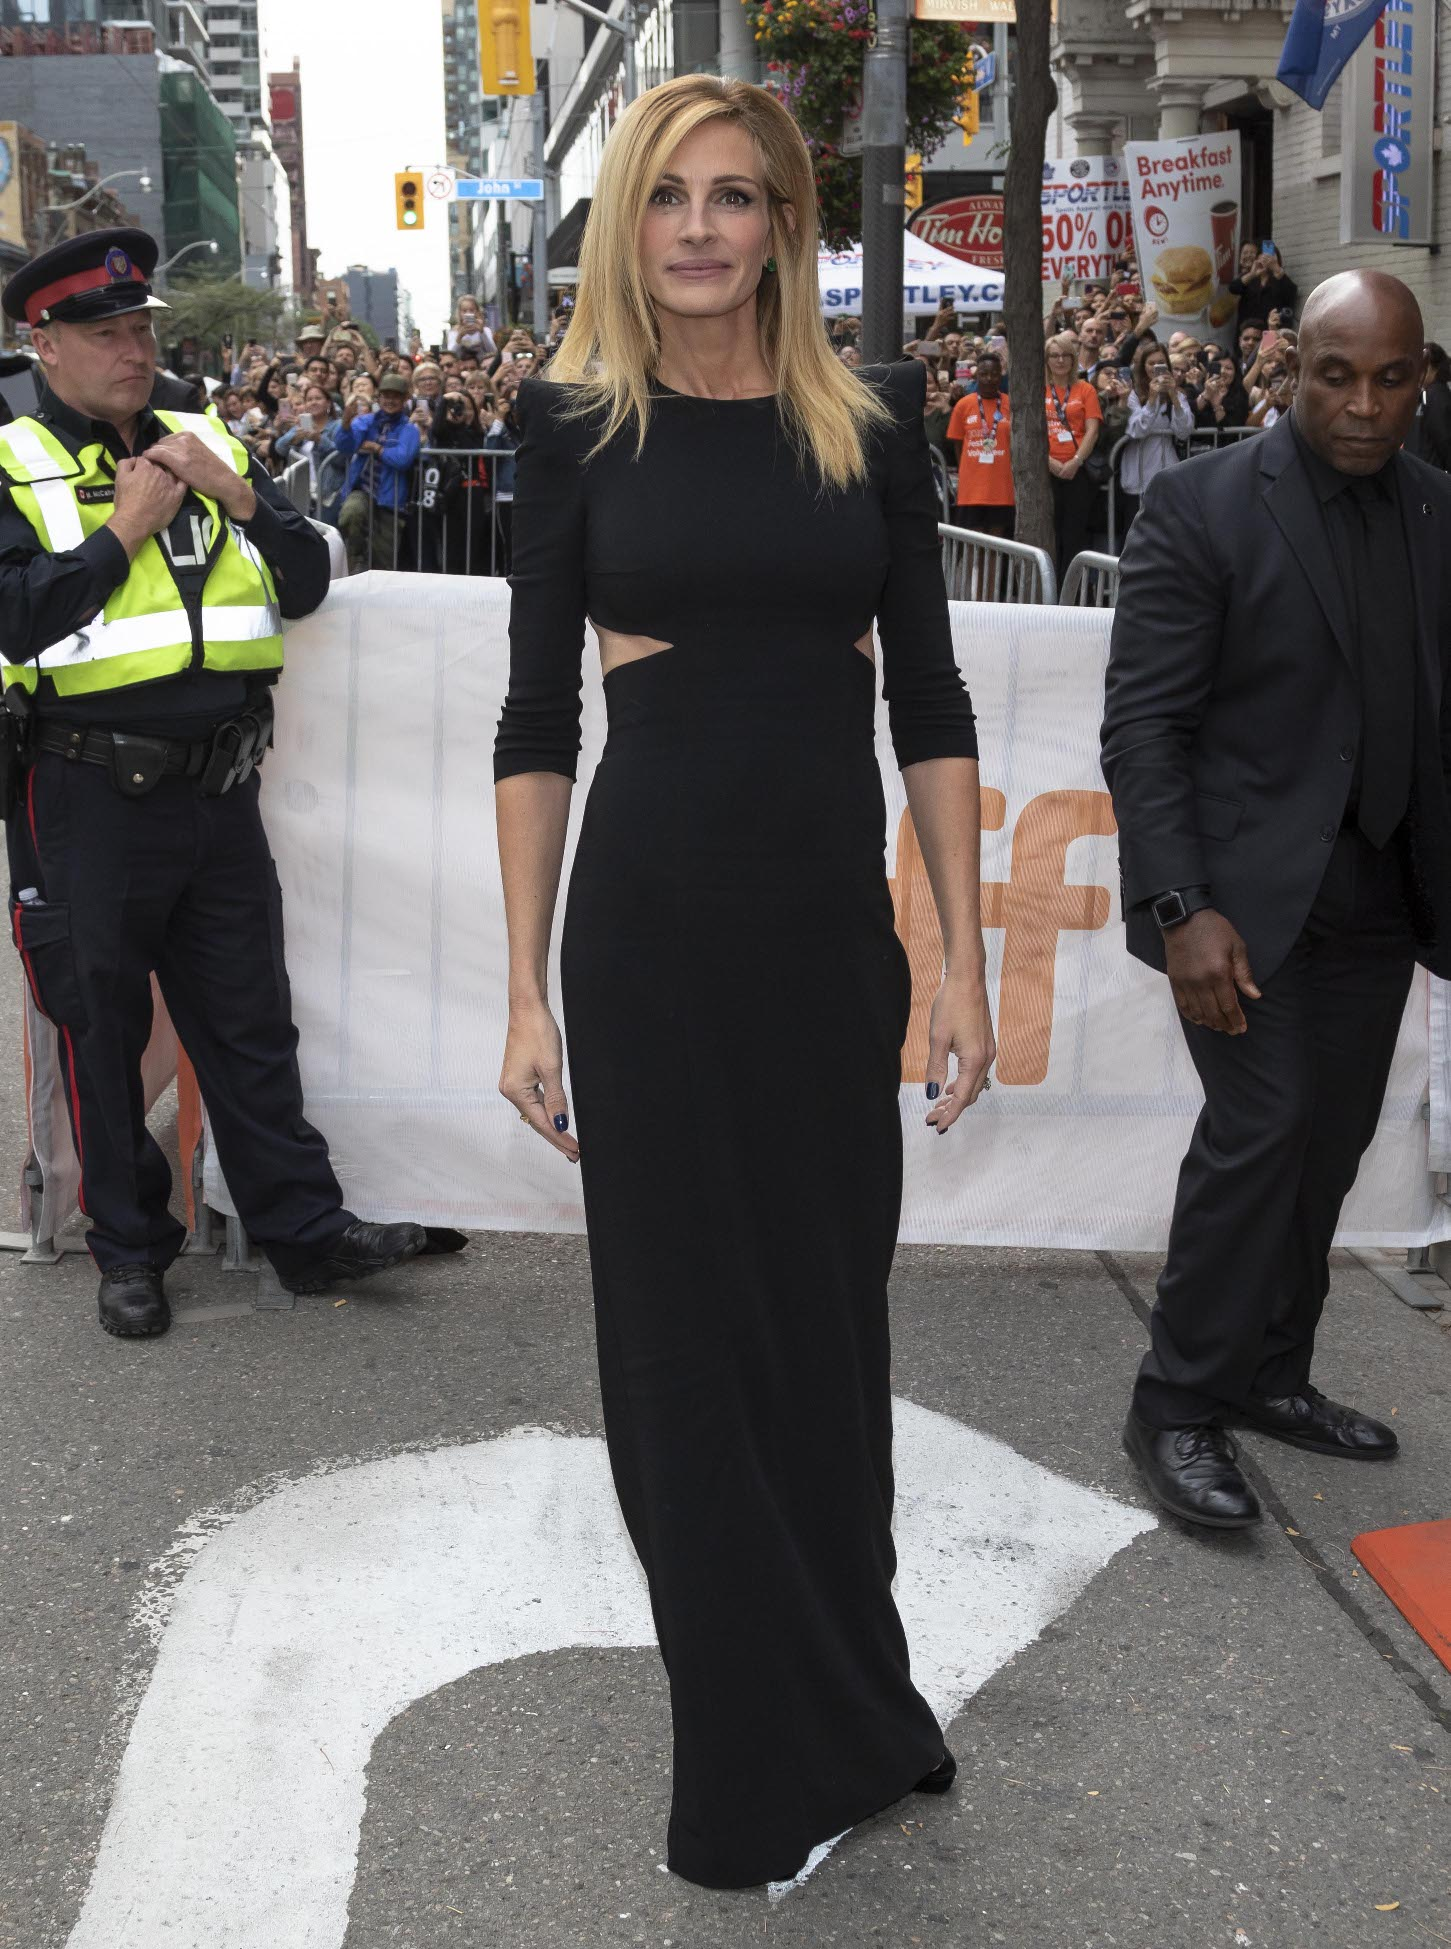 Julia Roberts and Kathryn Newton are seen arriving at the premiere of 'Ben Is Back' during the 43rd Toronto International Film Festival, at the Princess of Wales Theatre in Toronto, Canada  Pictured: Julia Roberts Ref: SPL5022359 080918 NON-EXCLUSIVE Picture by: SplashNews.com  Splash News and Pictures Los Angeles: 310-821-2666 New York: 212-619-2666 London: 0207 644 7656 Milan: +39 02 4399 8577 Sydney: +61 02 9240 7700 photodesk@splashnews.com  World Rights, No France Rights, No United Kingdom Rights